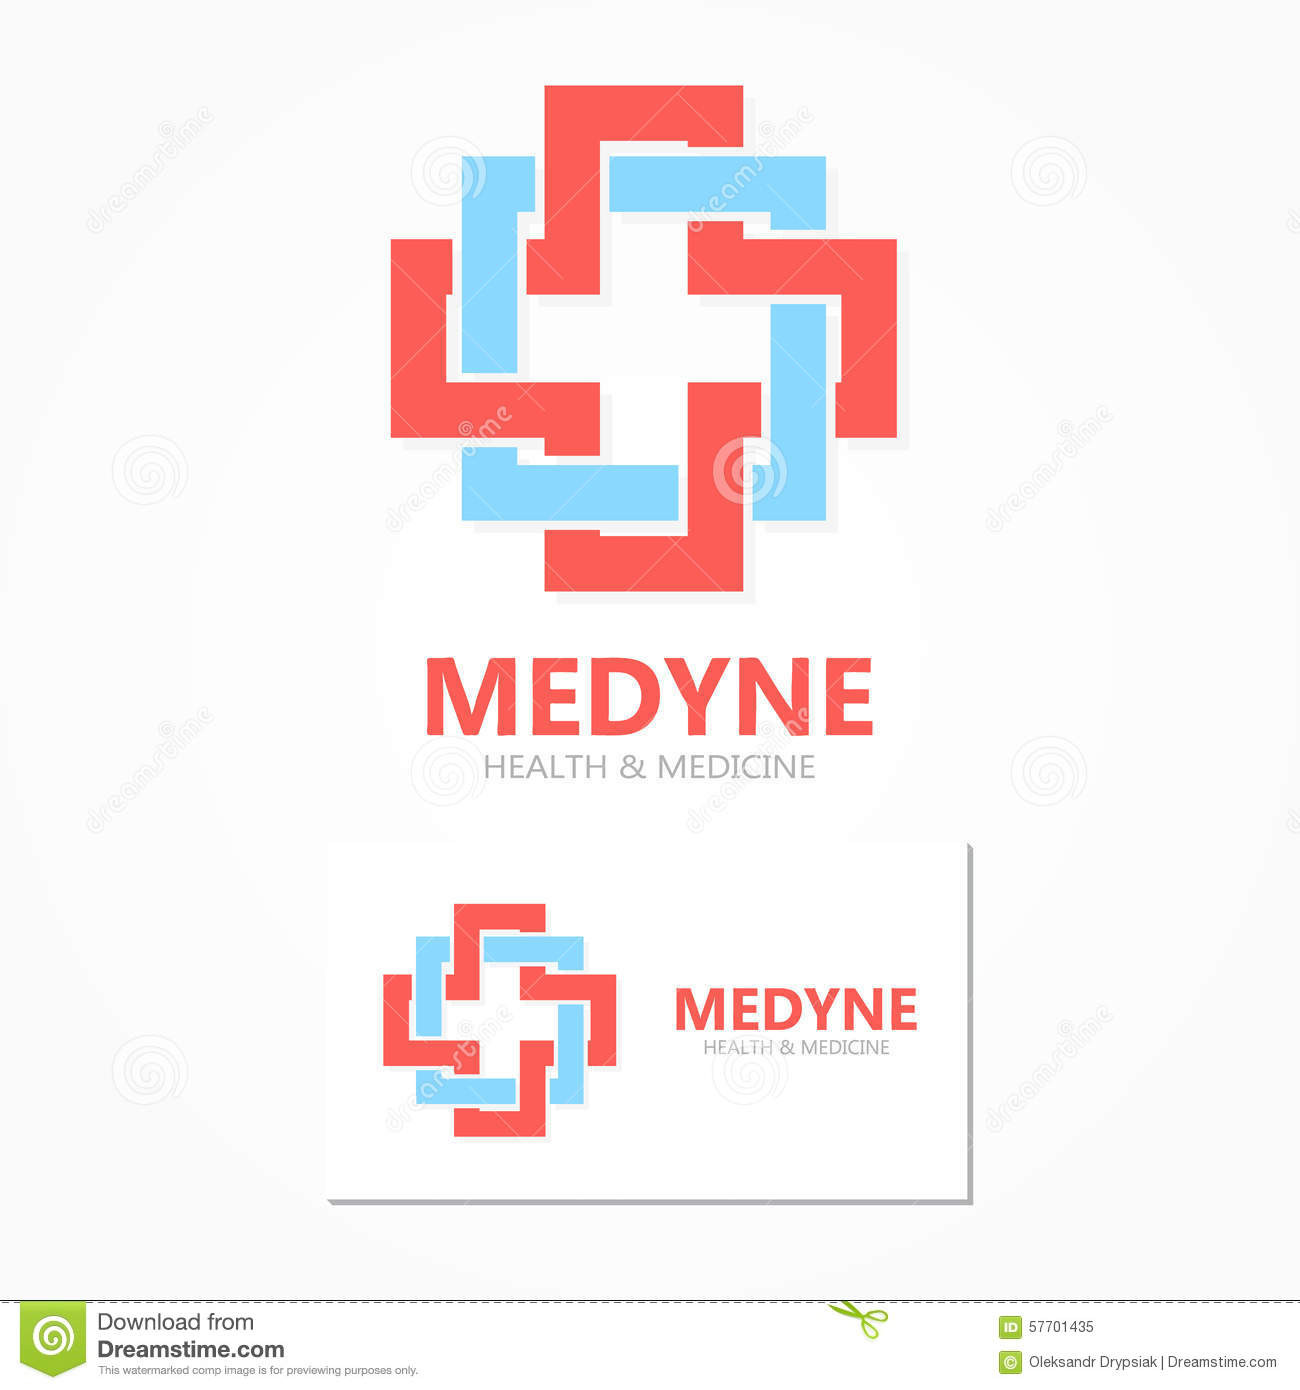 Medical Logo Designs  Make Your Own Medical Logo  BrandCrowd